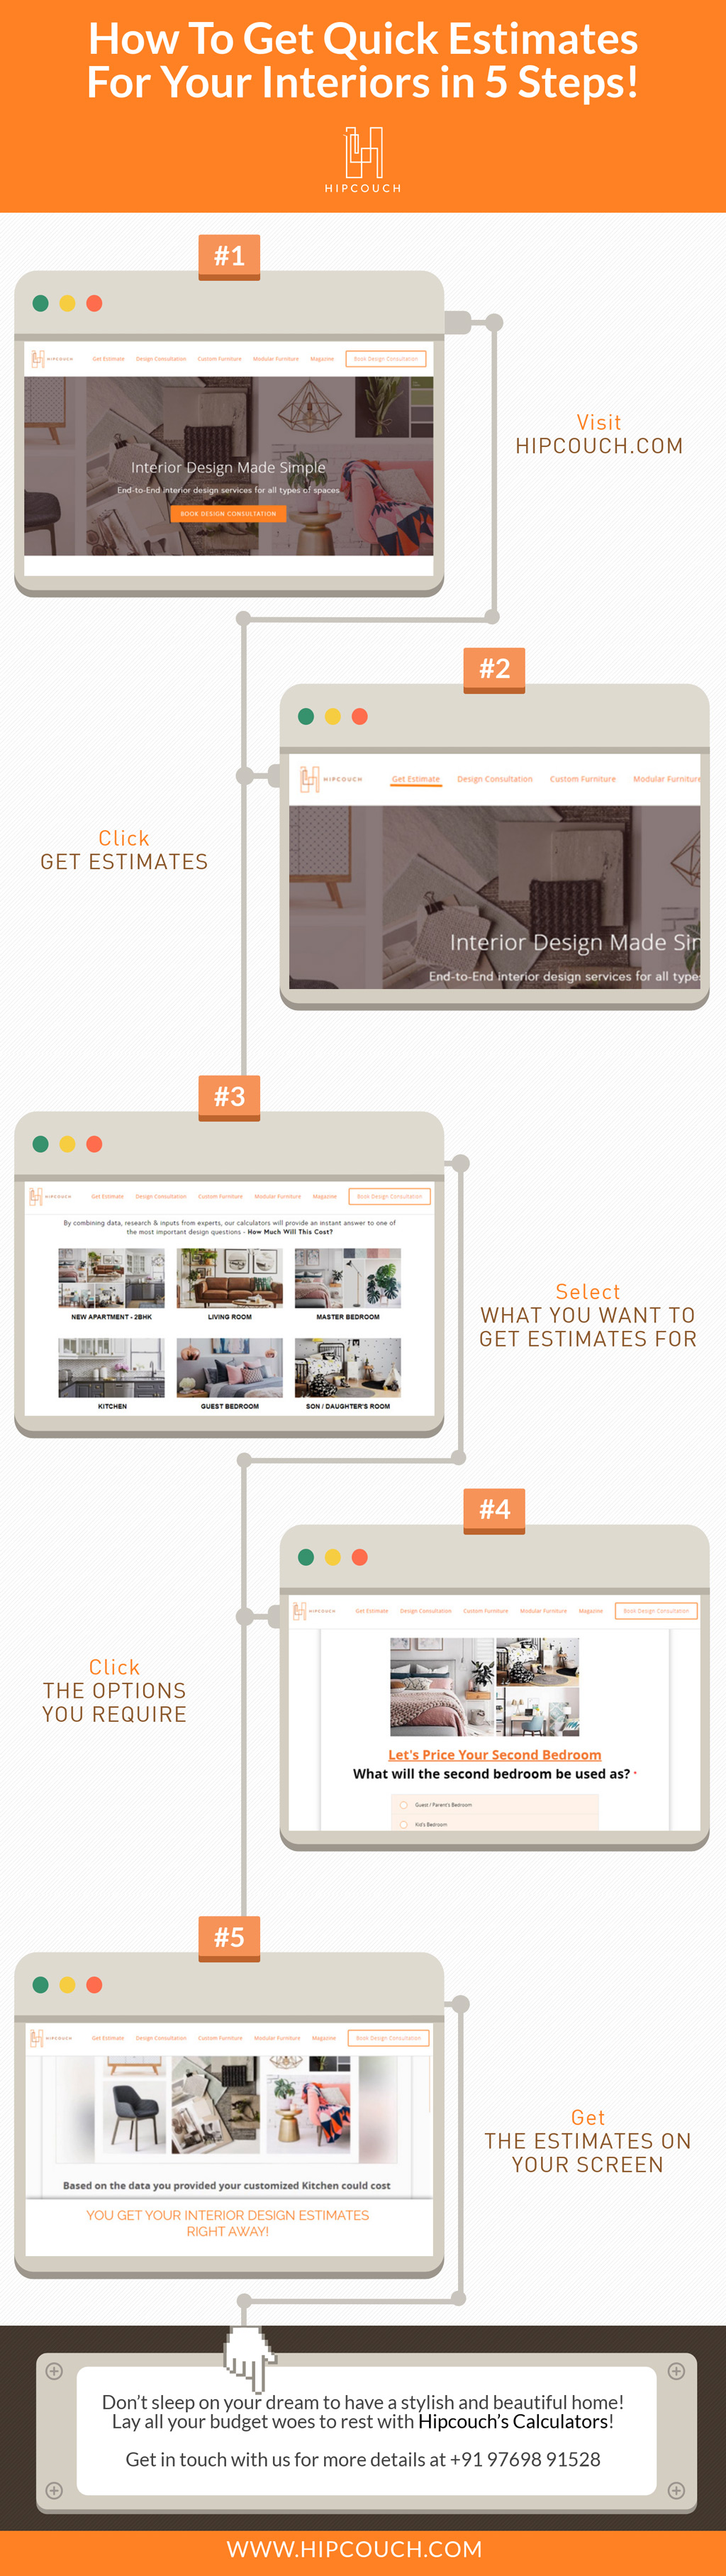 How-to-get-quick-estimates-for-your-interiors.jpg